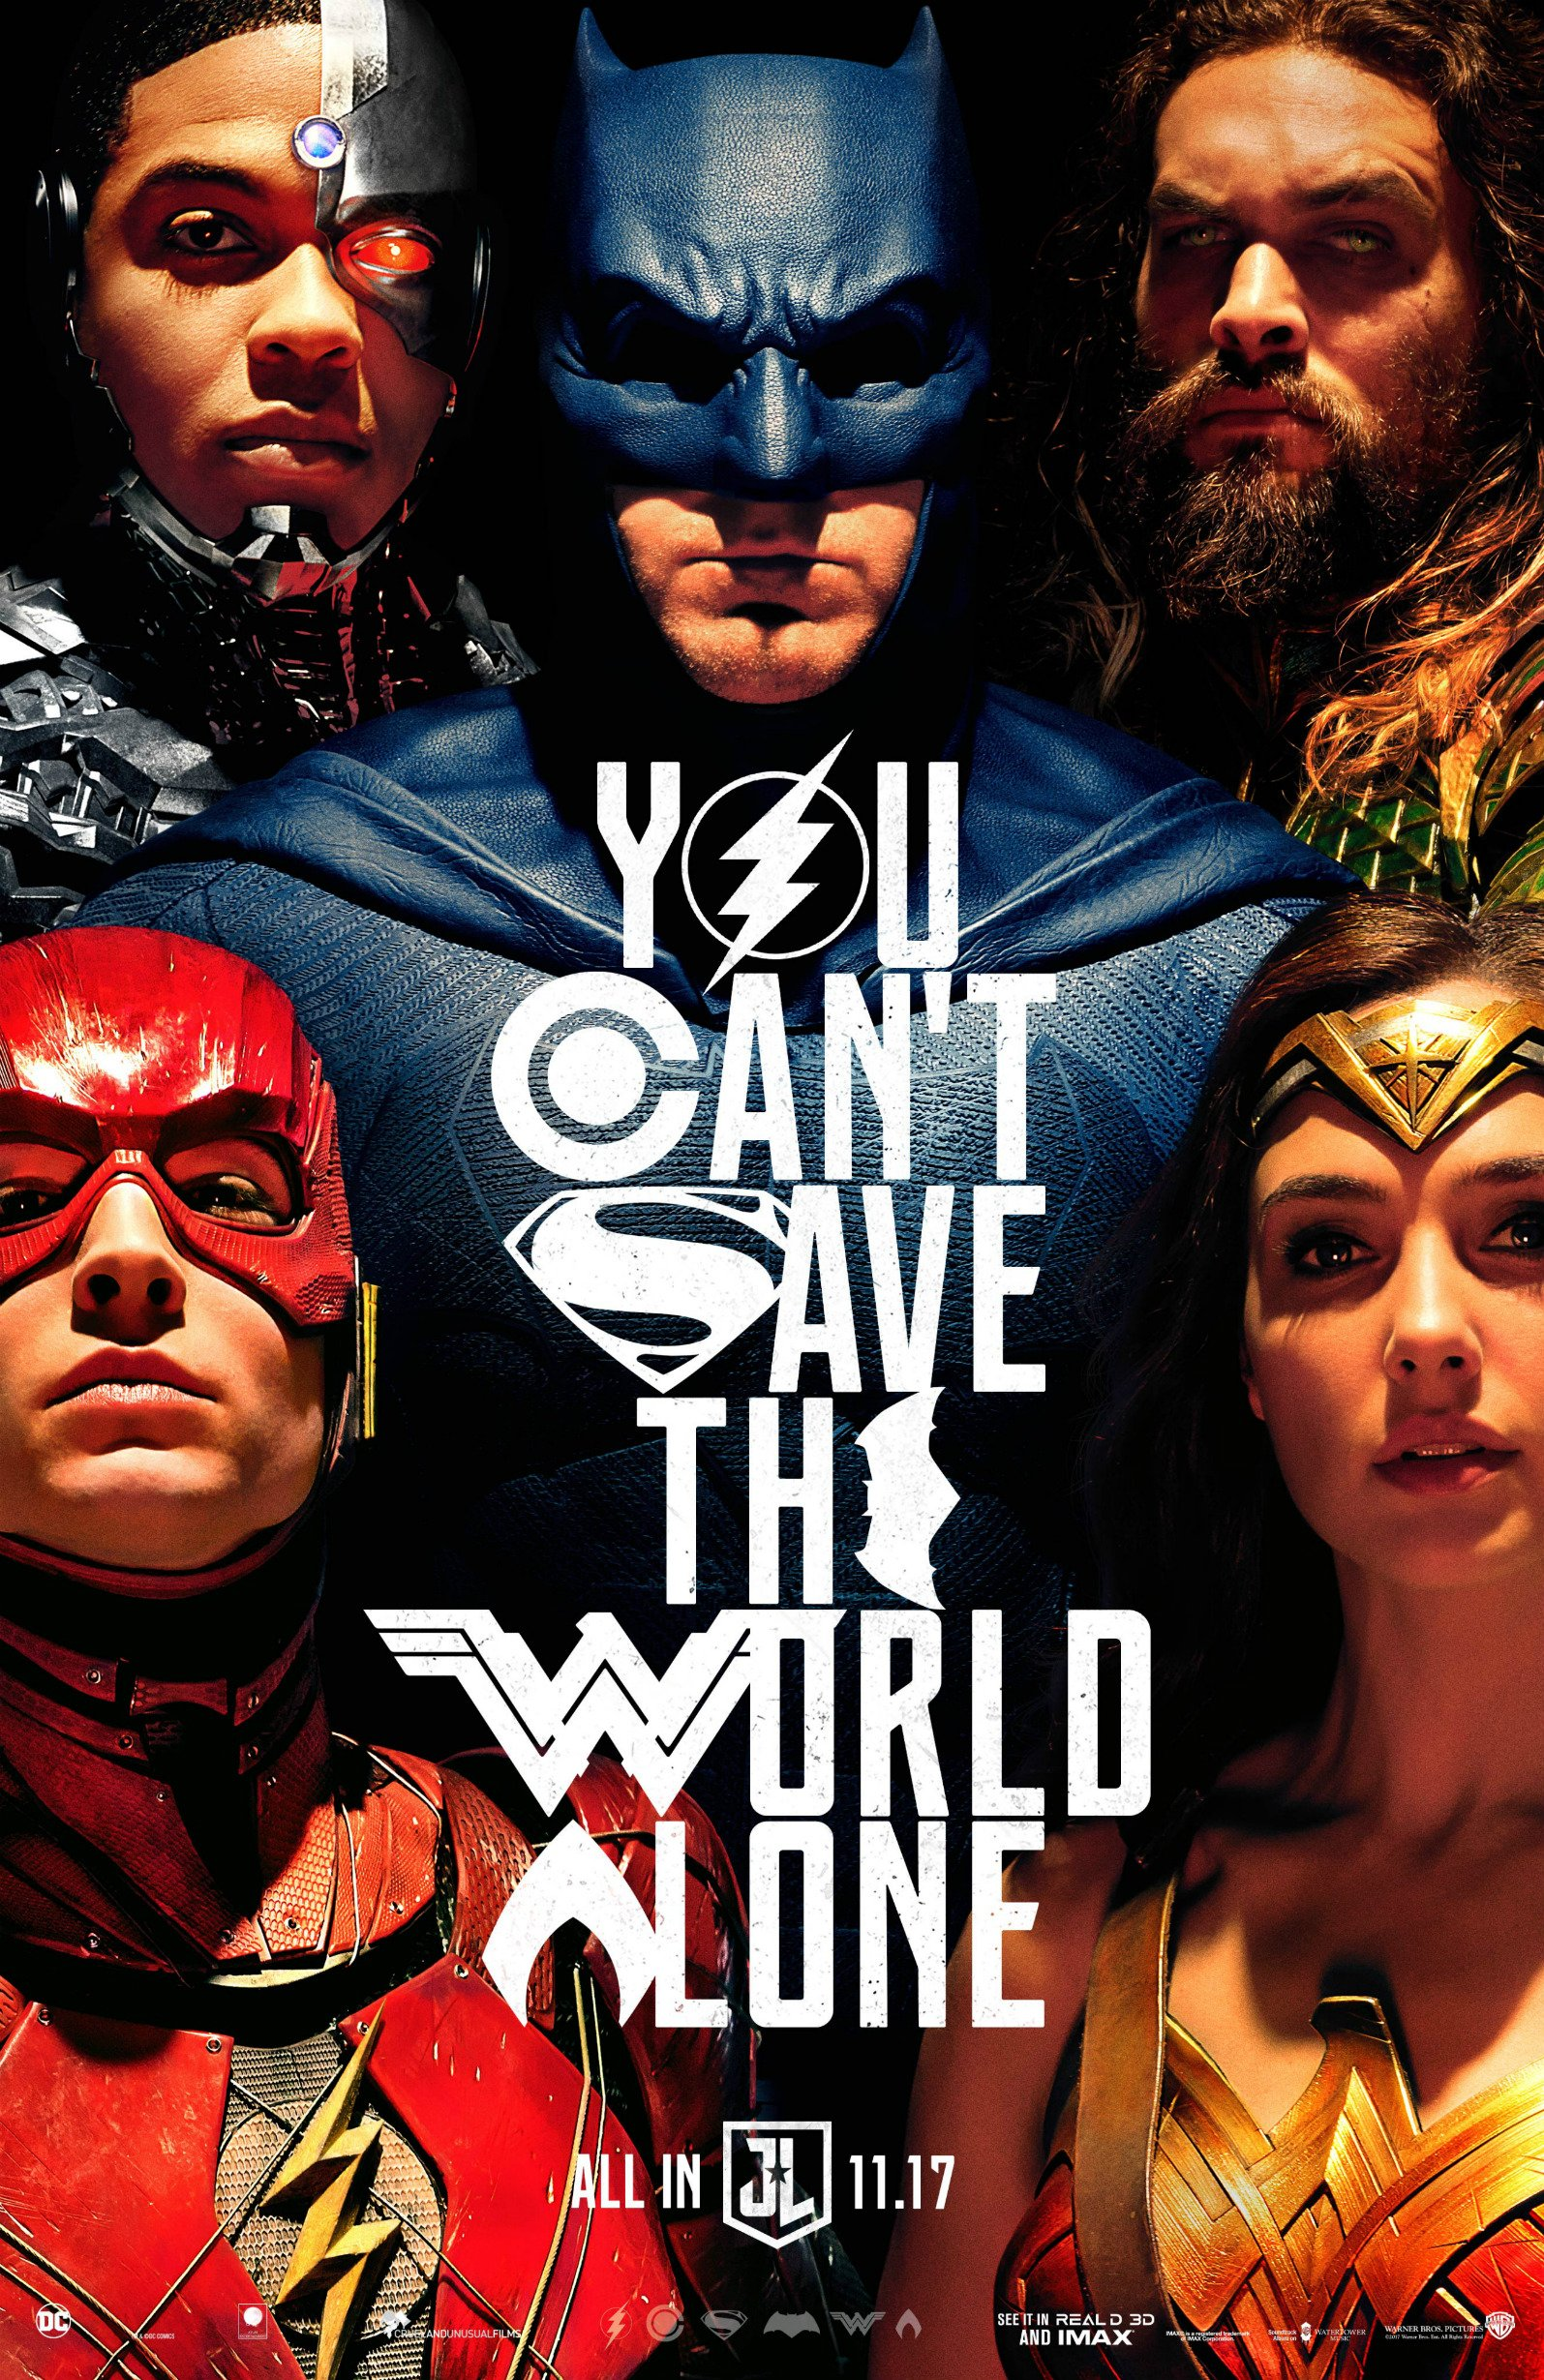 New Justice League Poster Promotes Teamwork